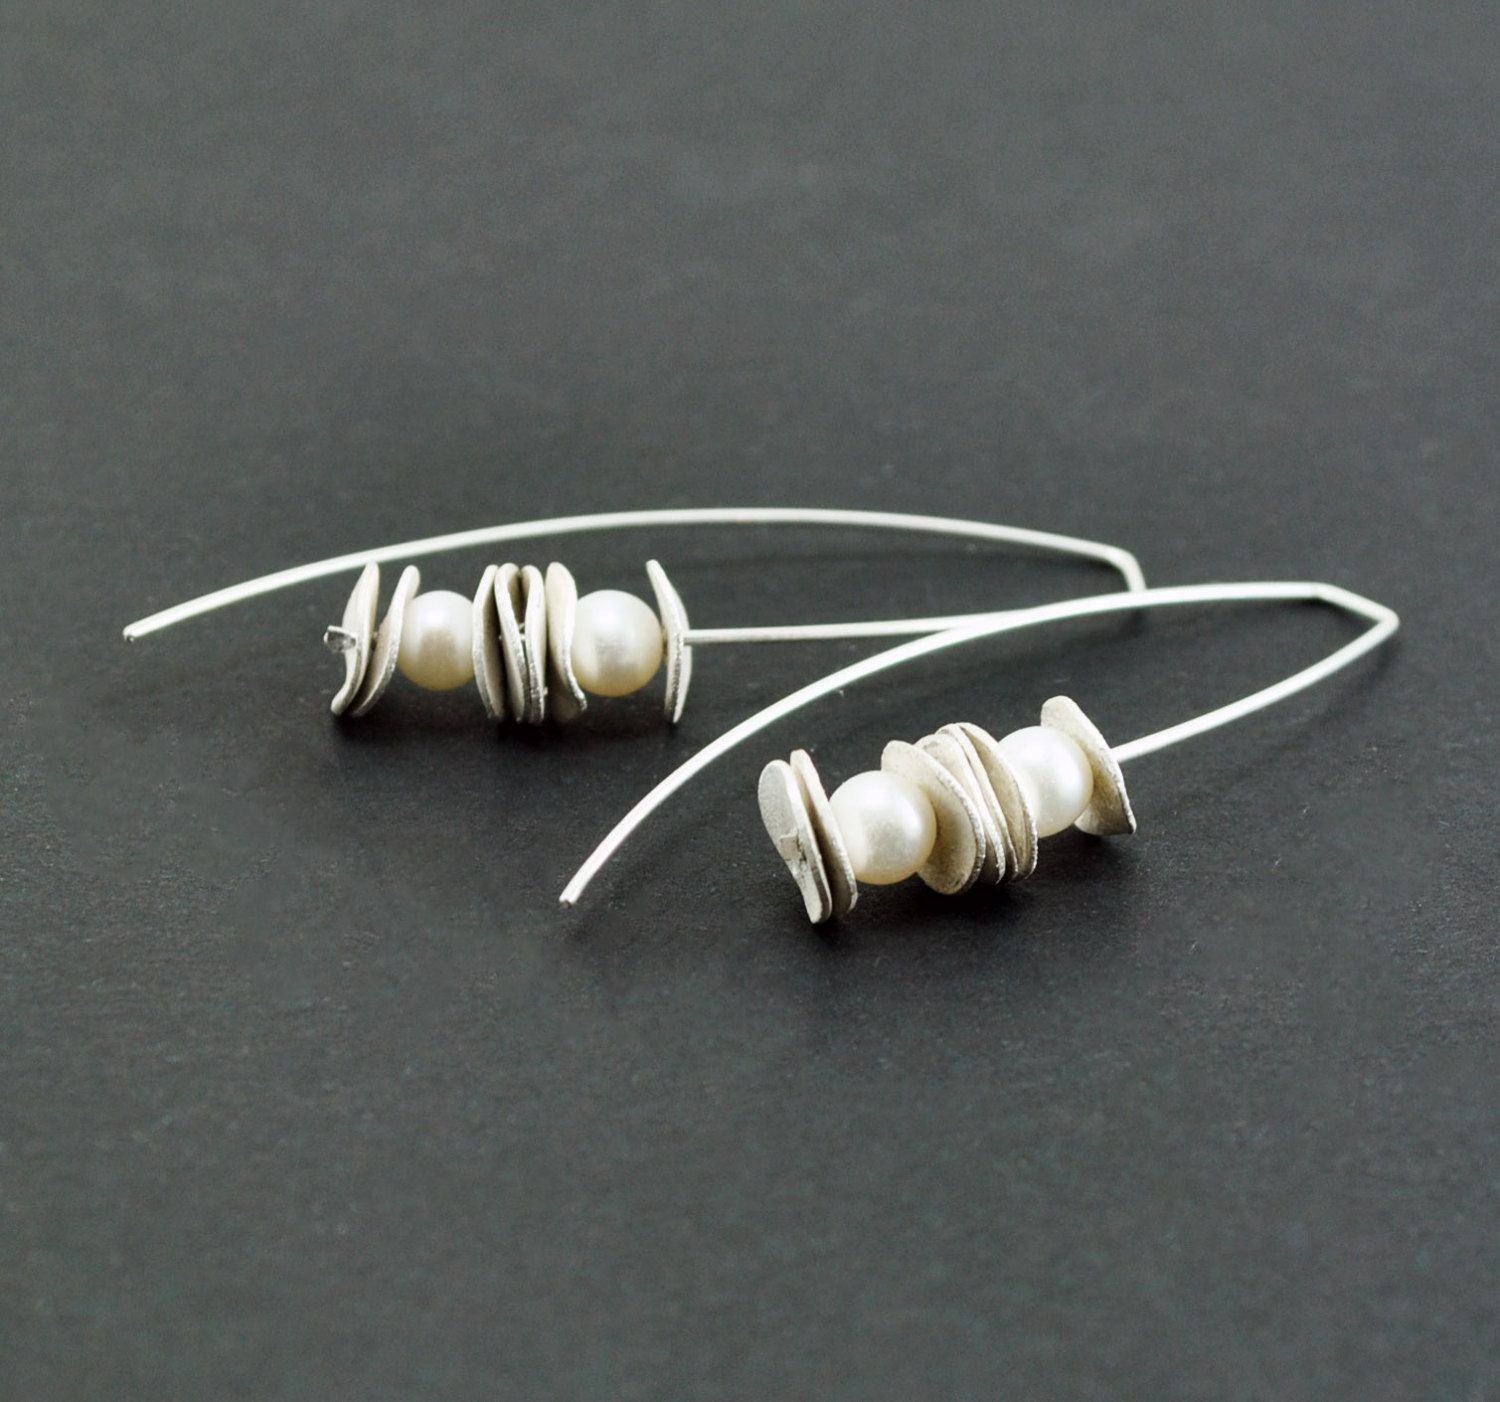 Etsy · Reticulated Sterling Silver Earrings